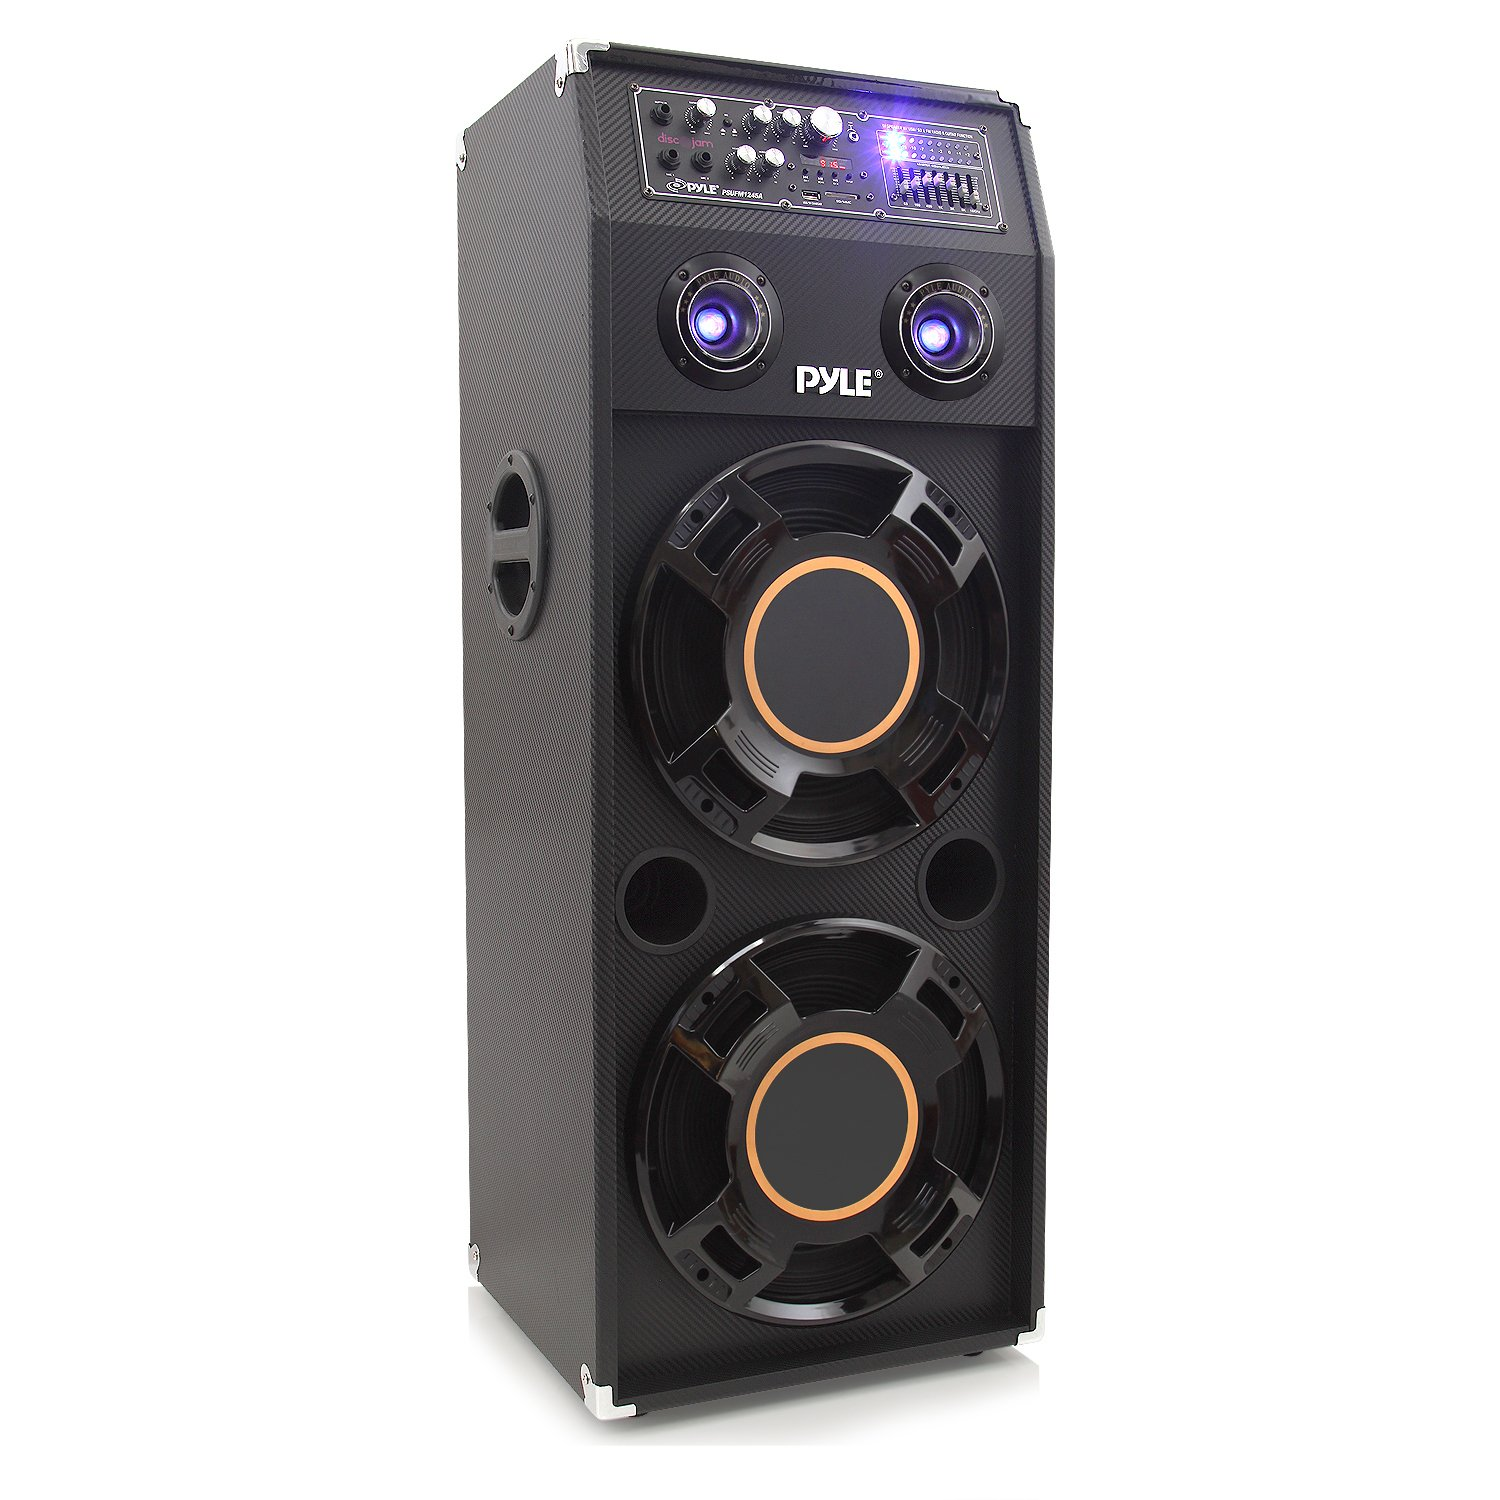 Portable DJ Dance Speaker System - Two-Way PA Stereo 1400 Watts w/ Dual 12'' Subwoofer Built-in LED Flashing Lights RCA Stereo Output Crossover Network & MP3/USB/Micro SD/FM Radio - Pyle PSUFM1245A by Pyle